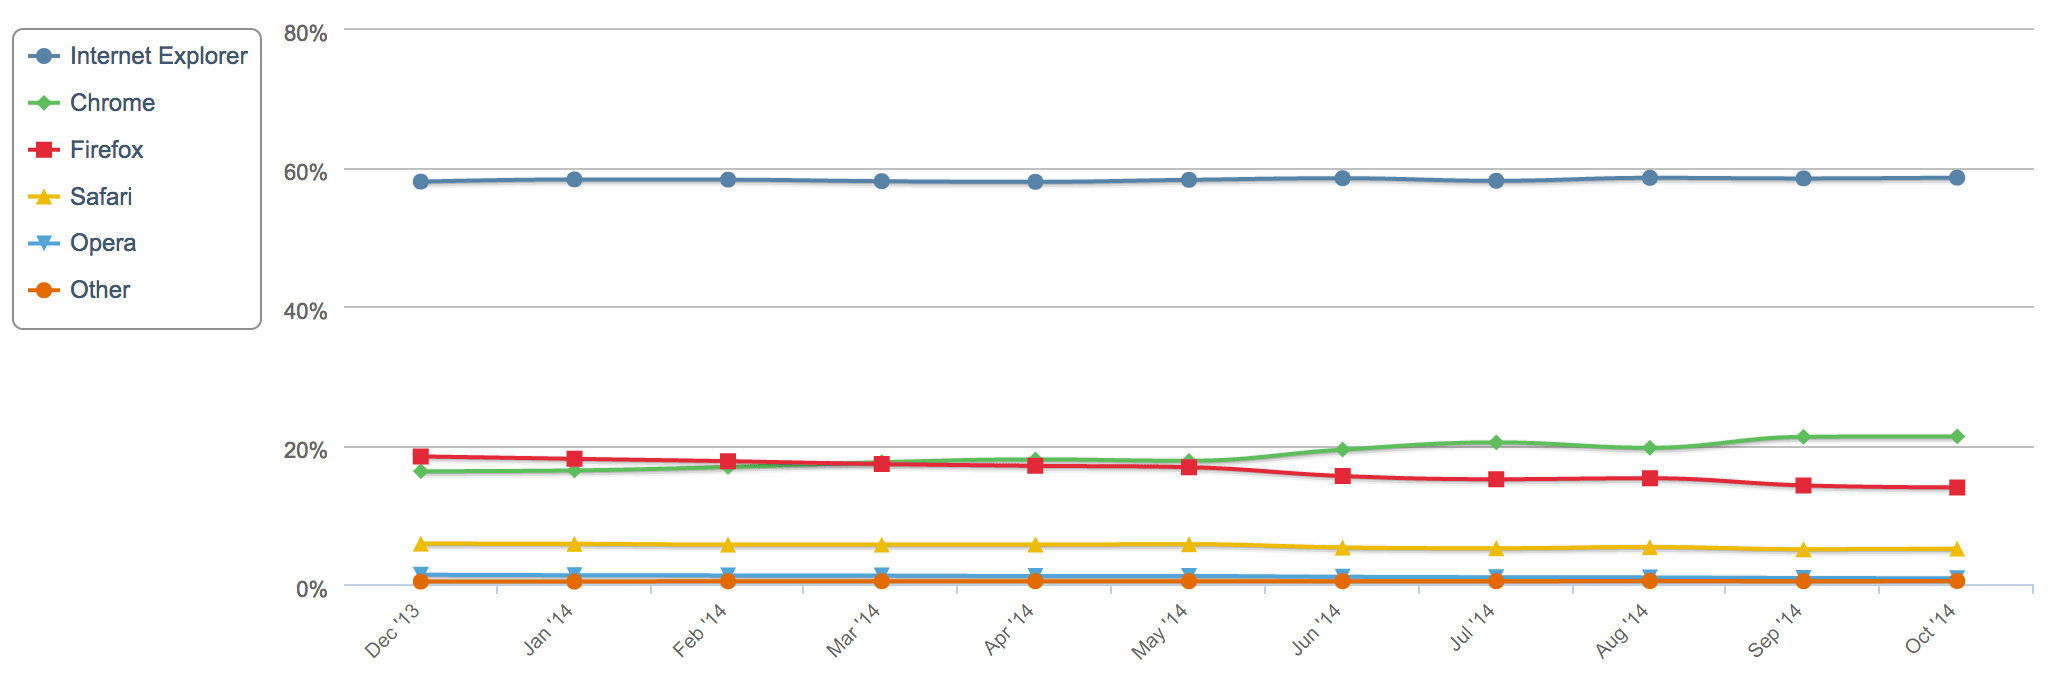 NetApplications' measurements of global browser users shows Chrome surpassing Firefox for personal computer users.